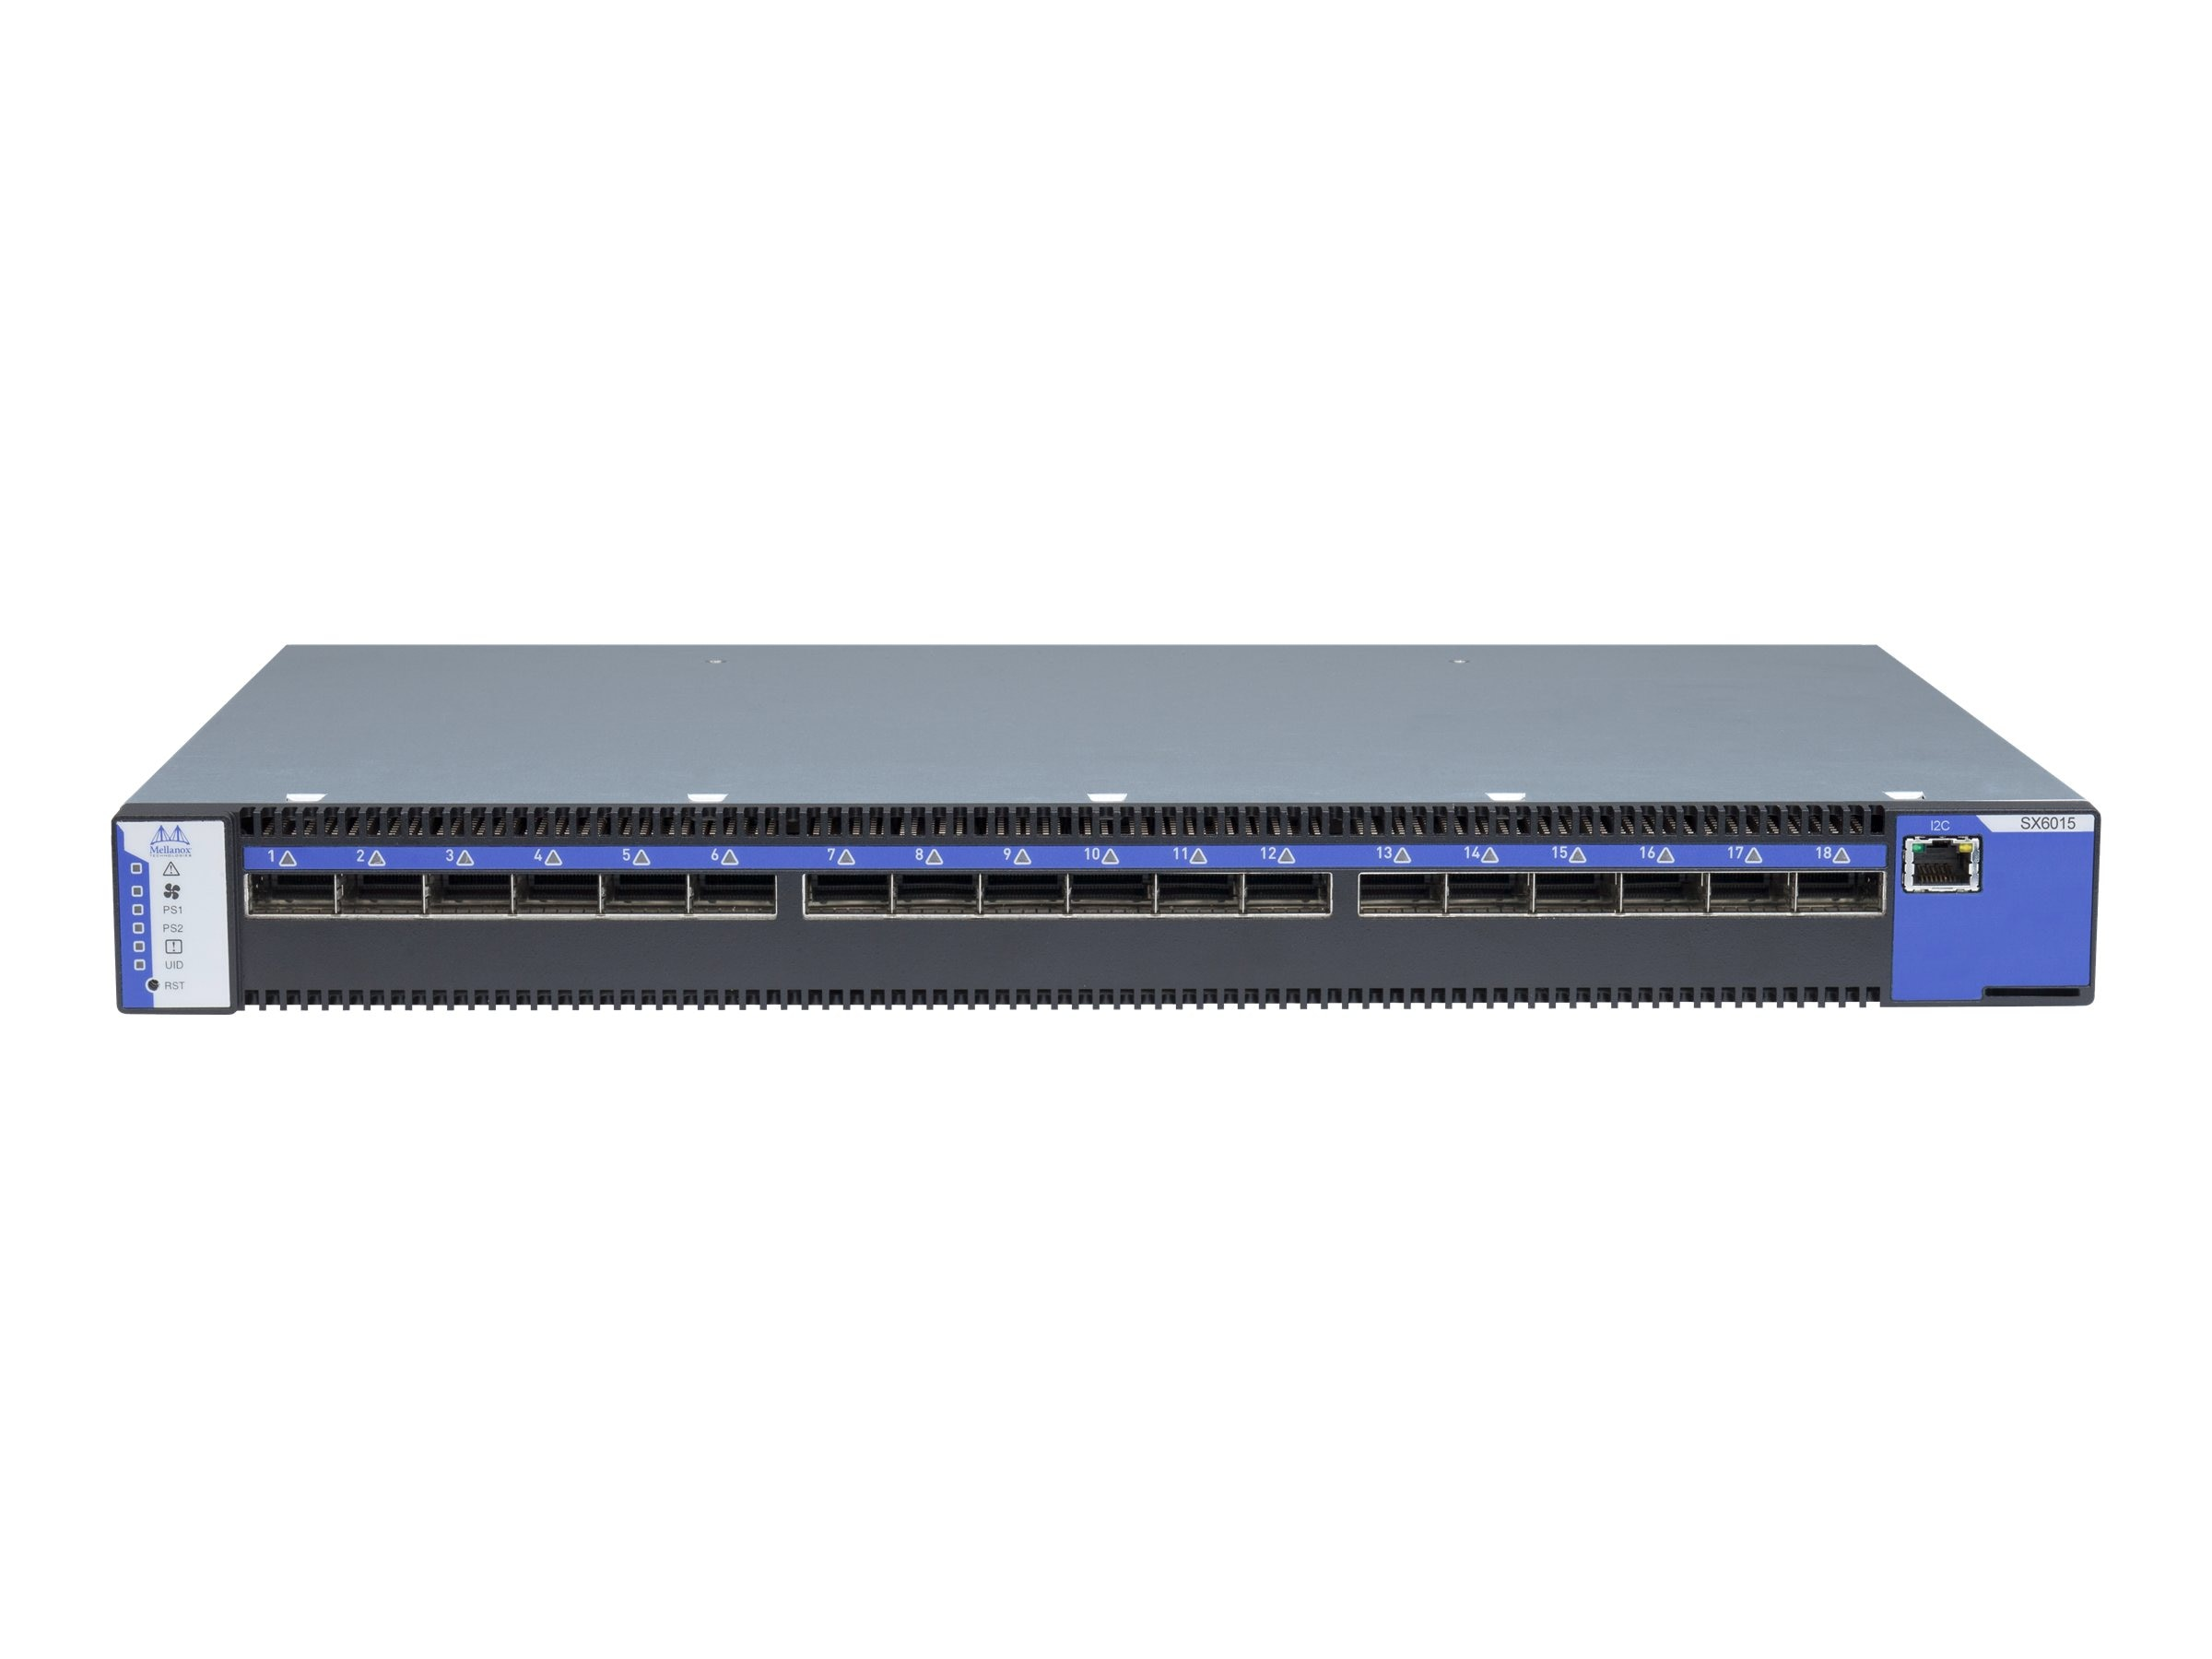 Mellanox SwitchX-2 Based 18-Port QSFP For10 1U Infiniband Switch, MSX6015T-1BRS, 16728944, Network Switches